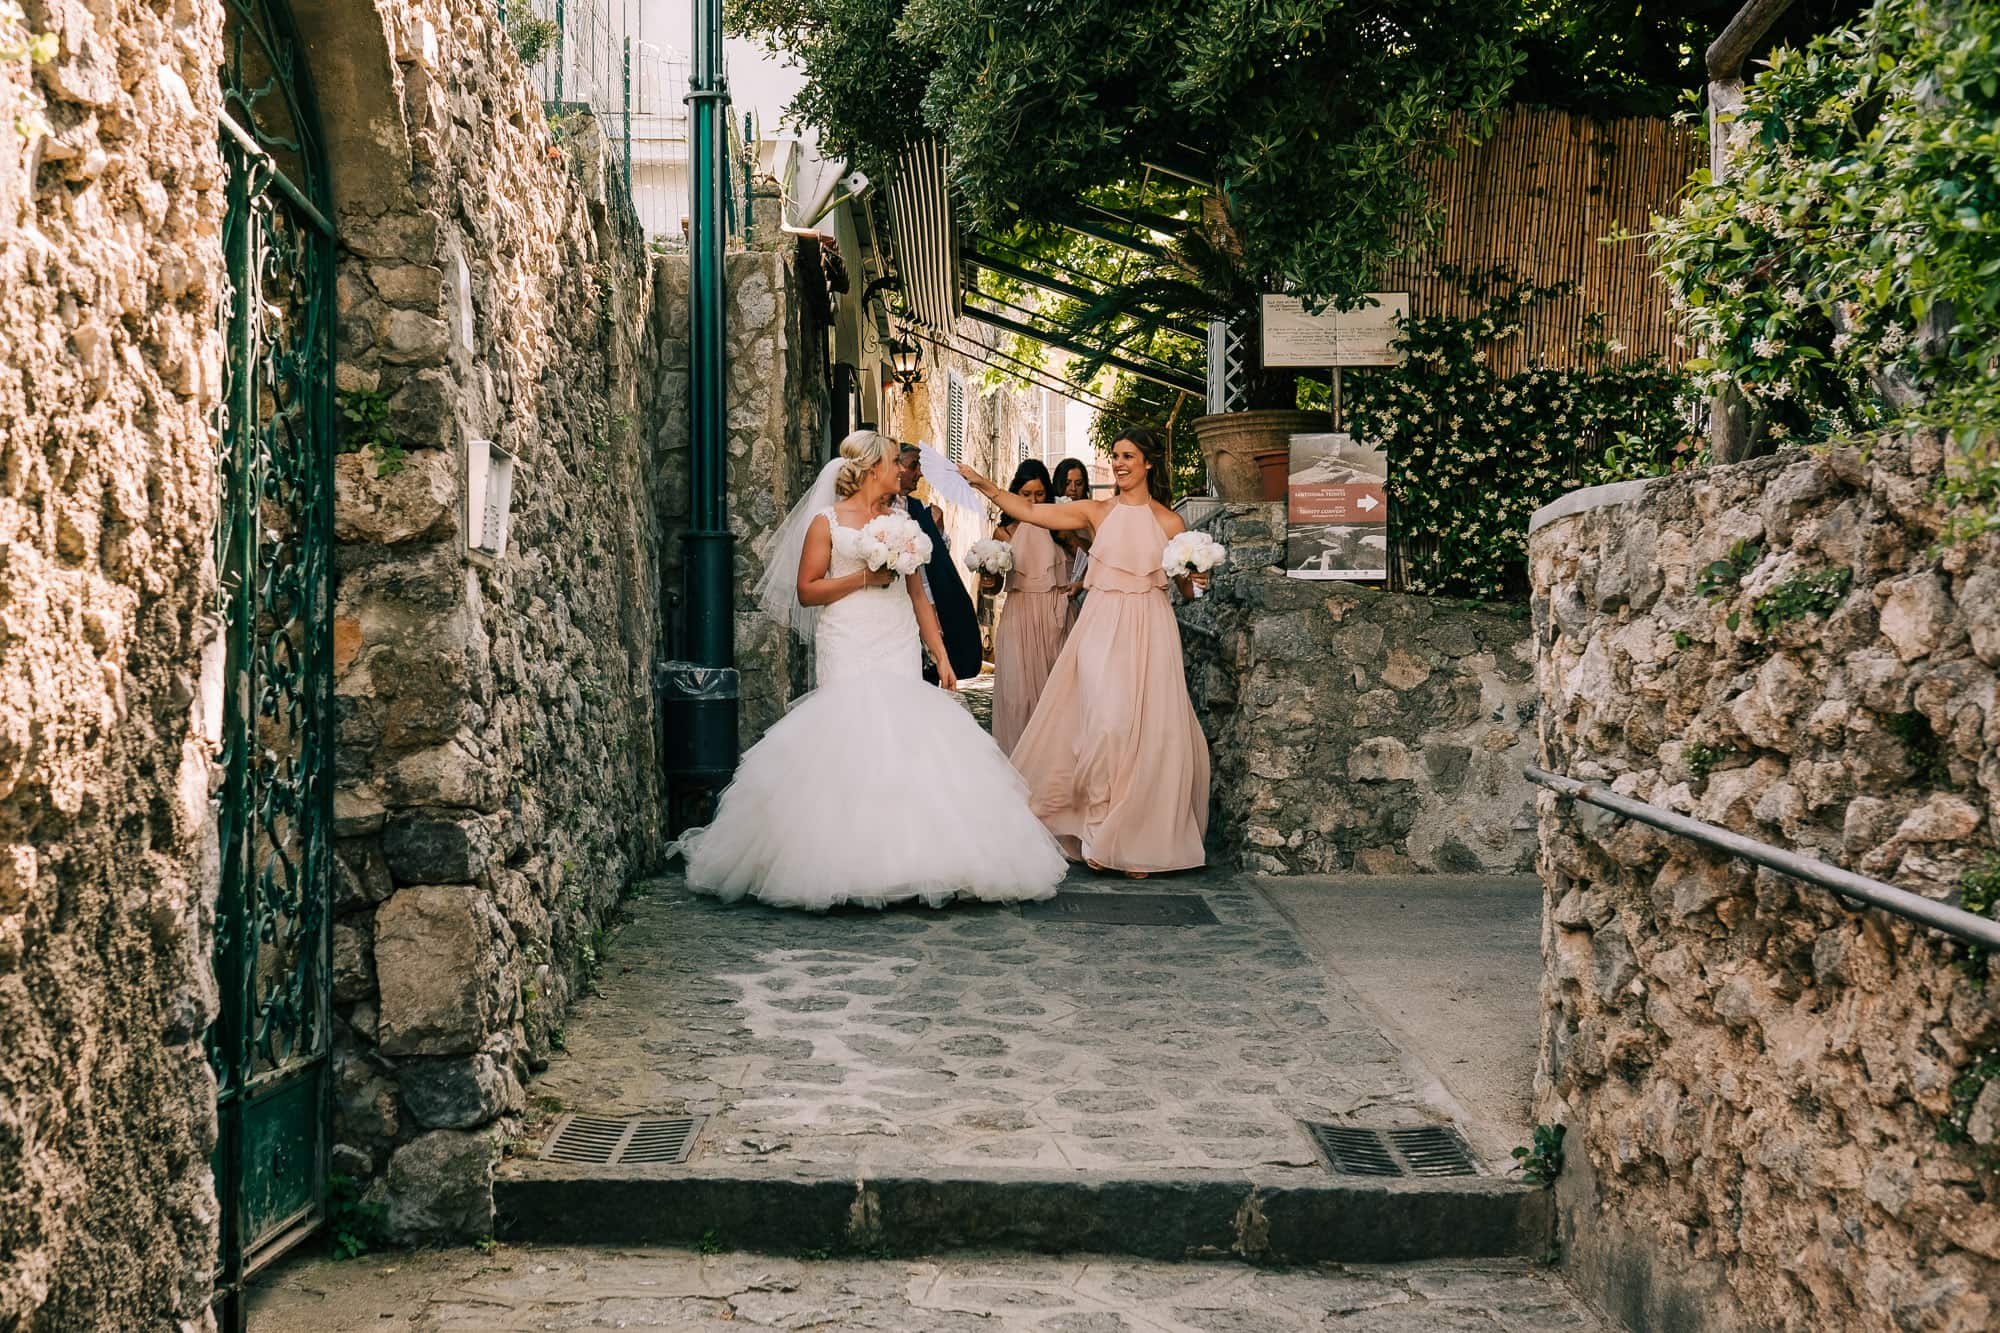 Bride walking through the streets of Ravello